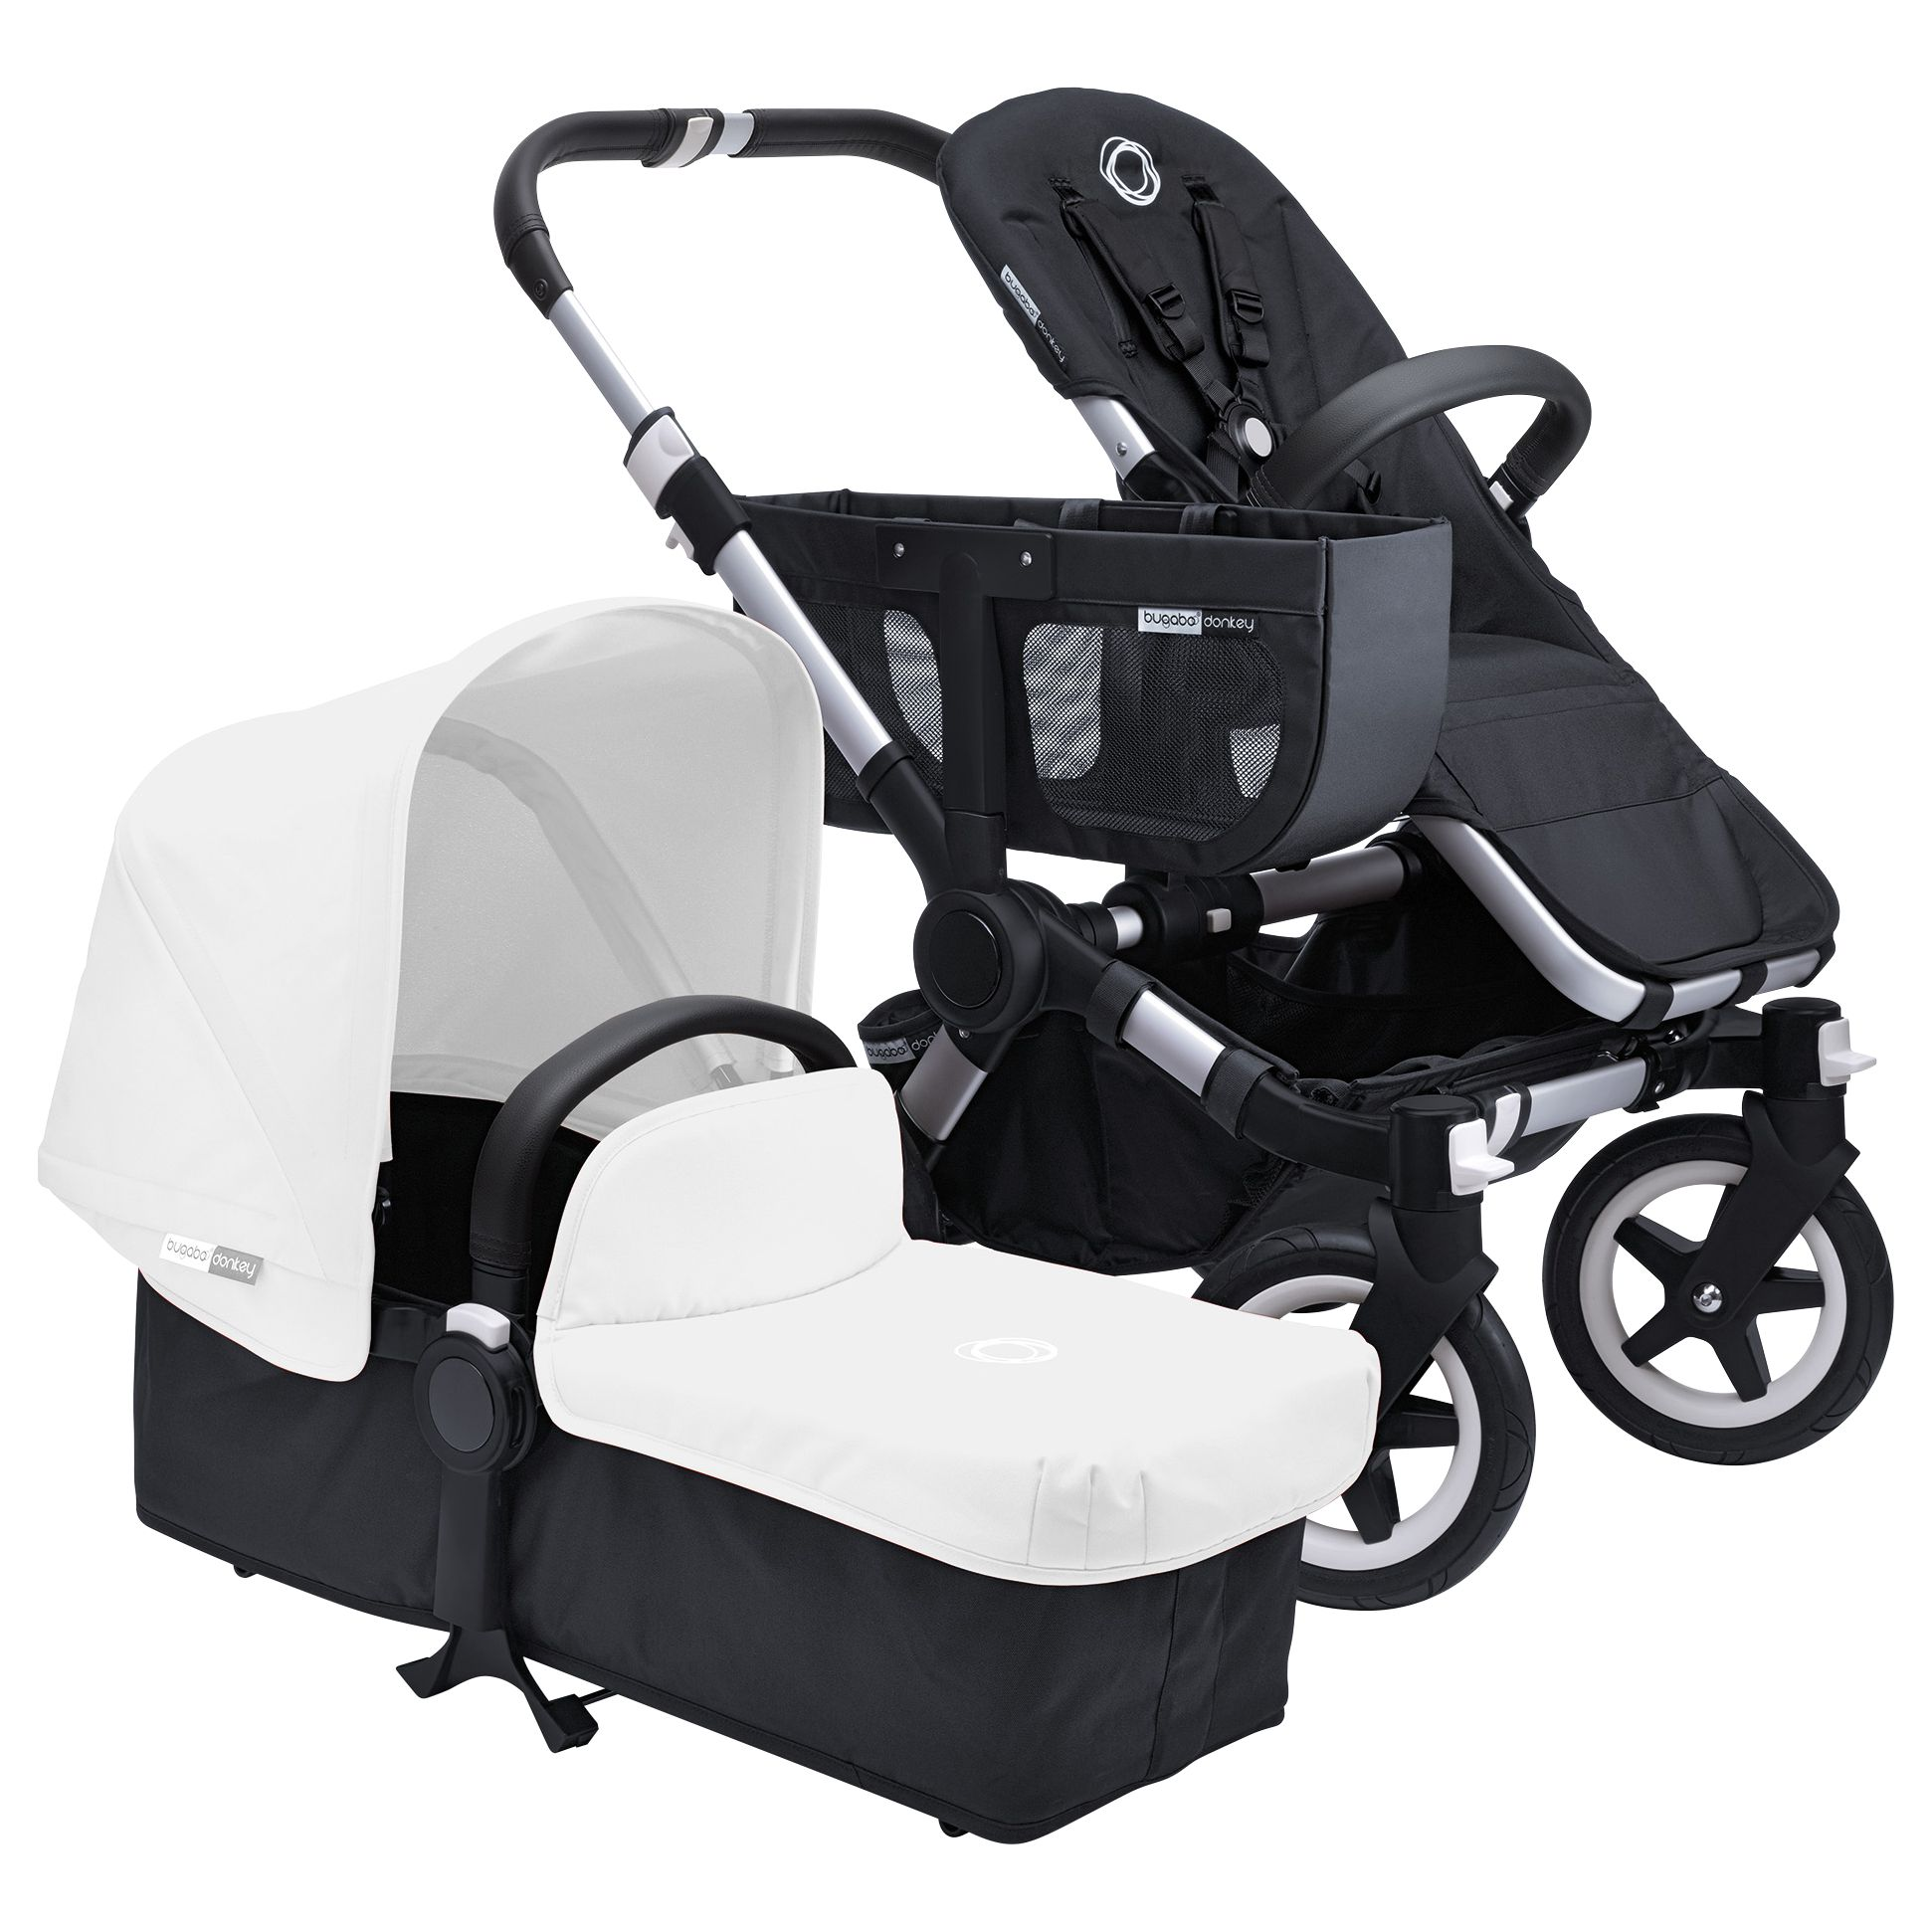 Bugaboo Bugaboo Donkey Base Pushchair Chassis and Carrycot 2016, Black/Aluminium